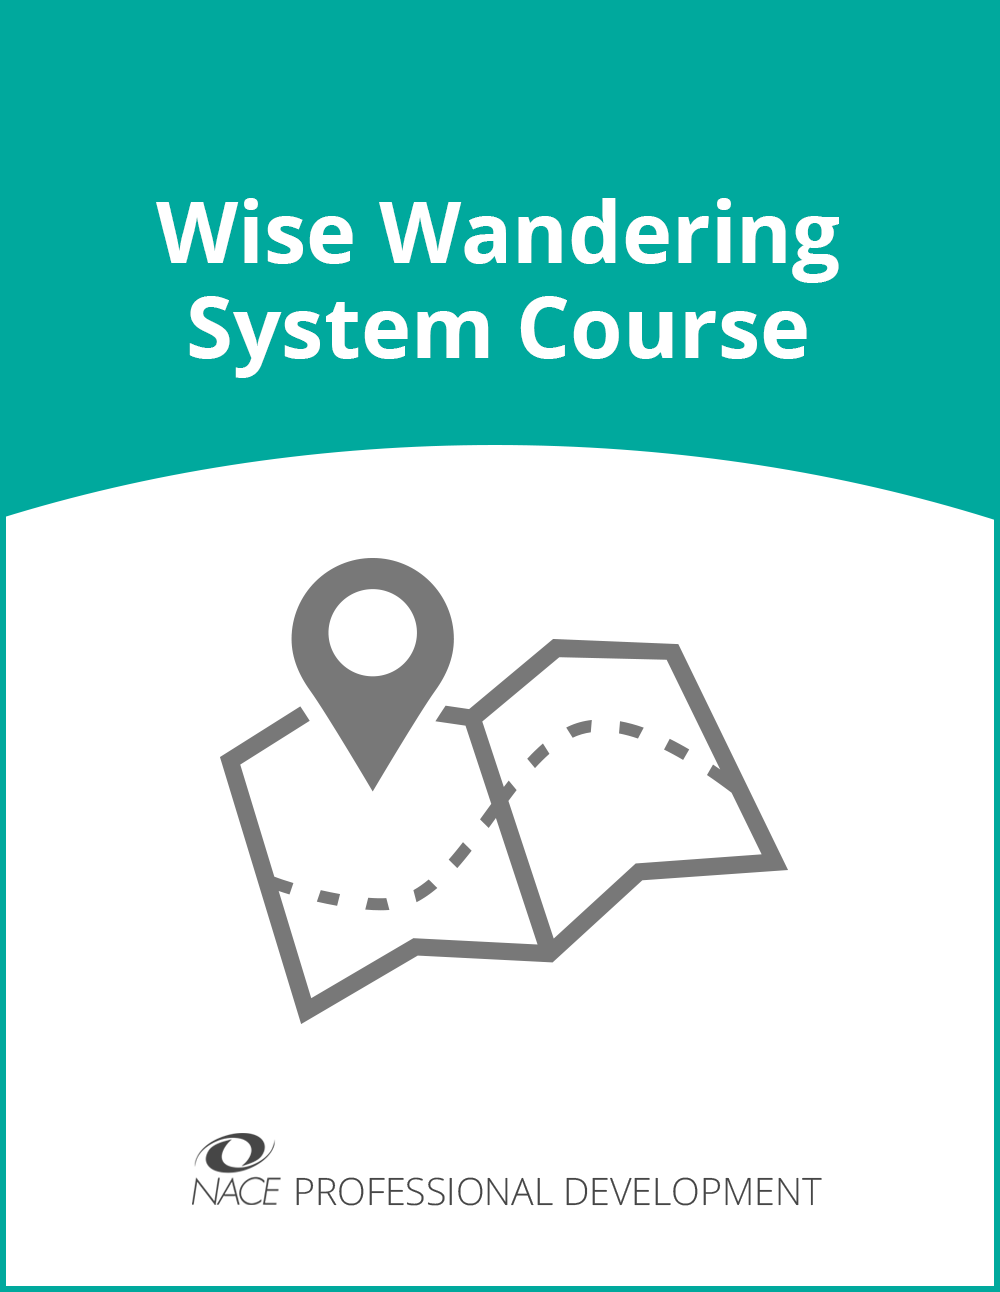 Wise Wandering System Course